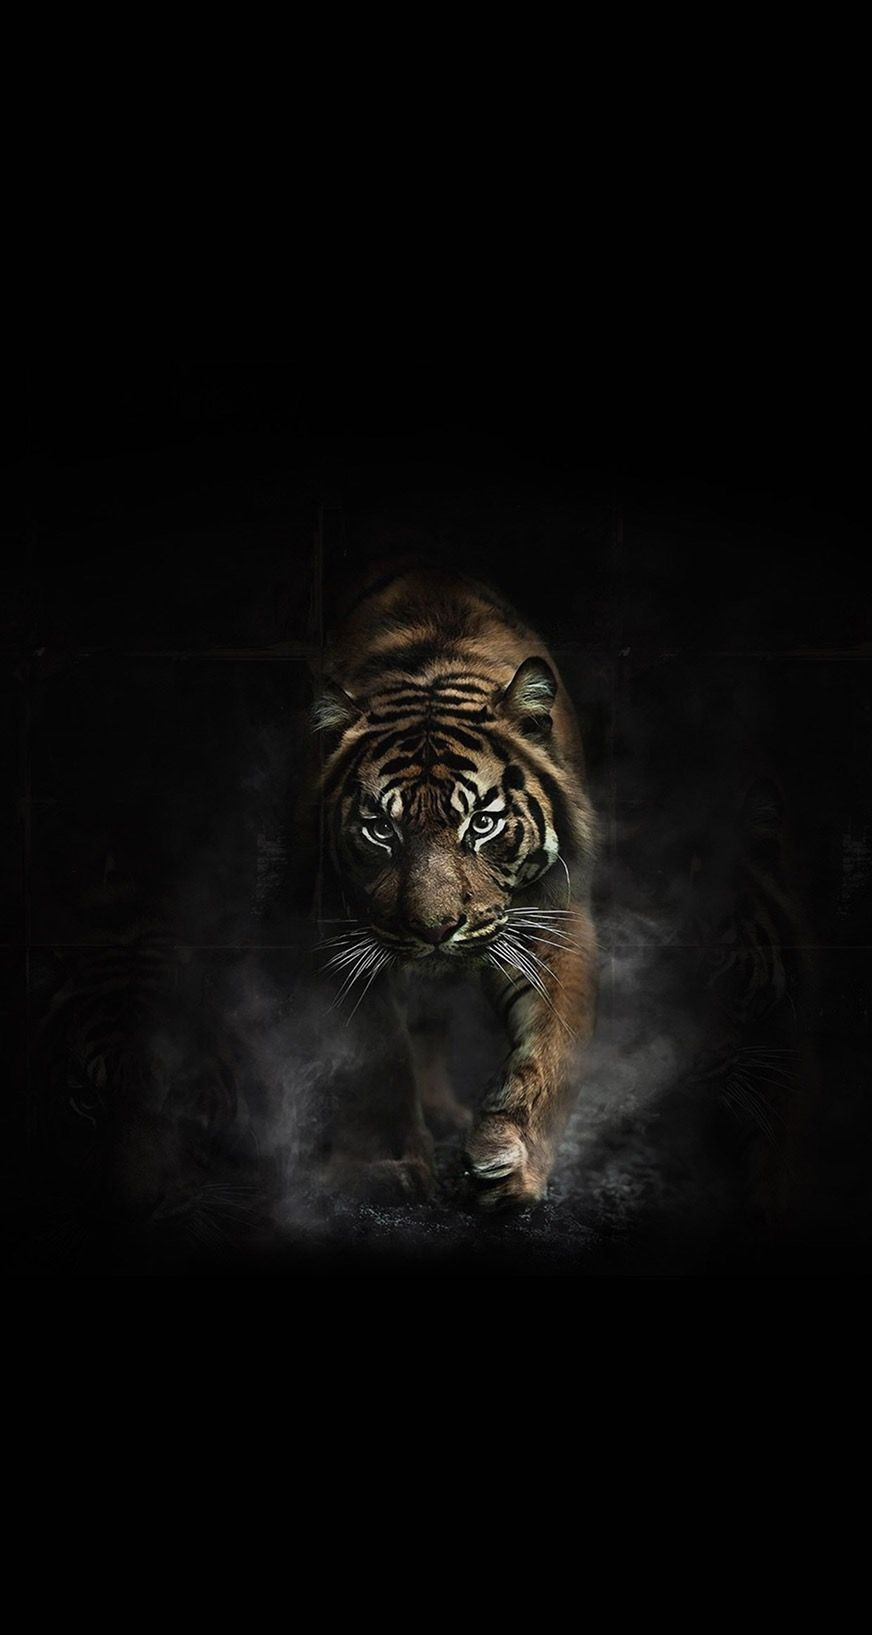 Shere Khan Tiger Images Tiger Wallpaper